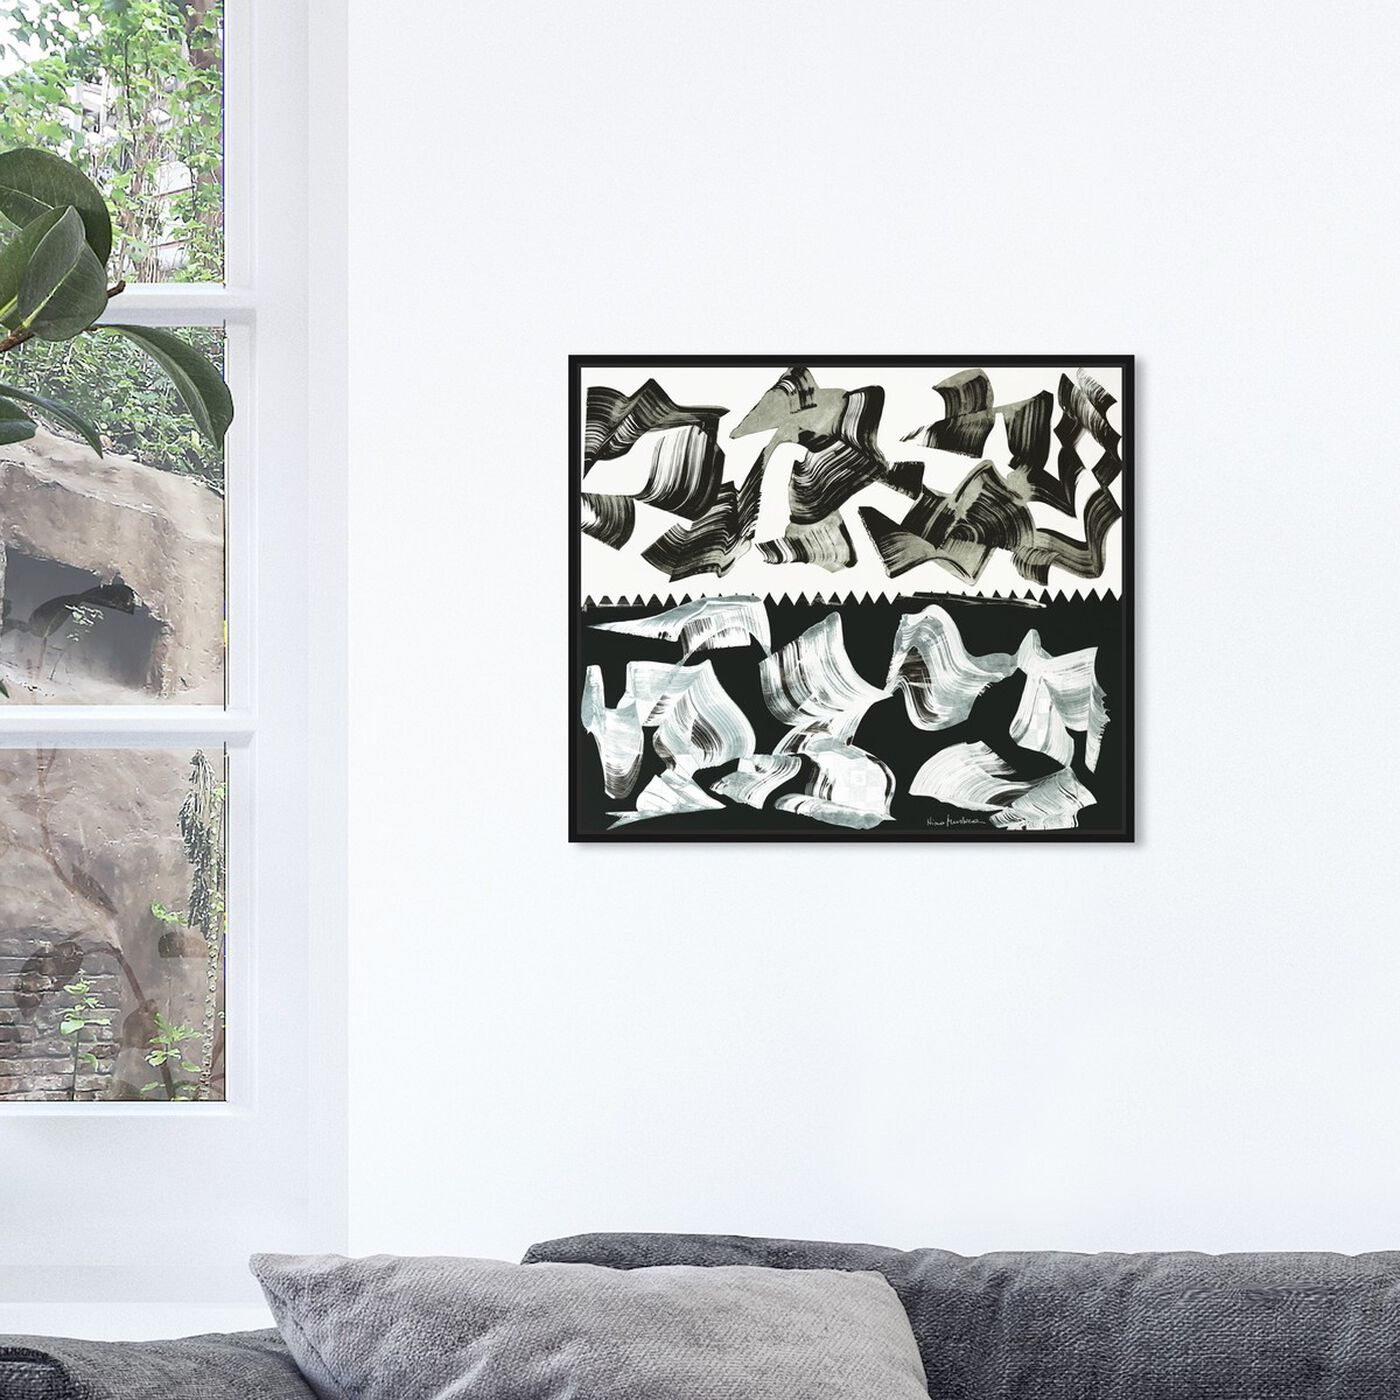 Hanging view of Sai - Ying Yang 3NM1132 featuring abstract and paint art.